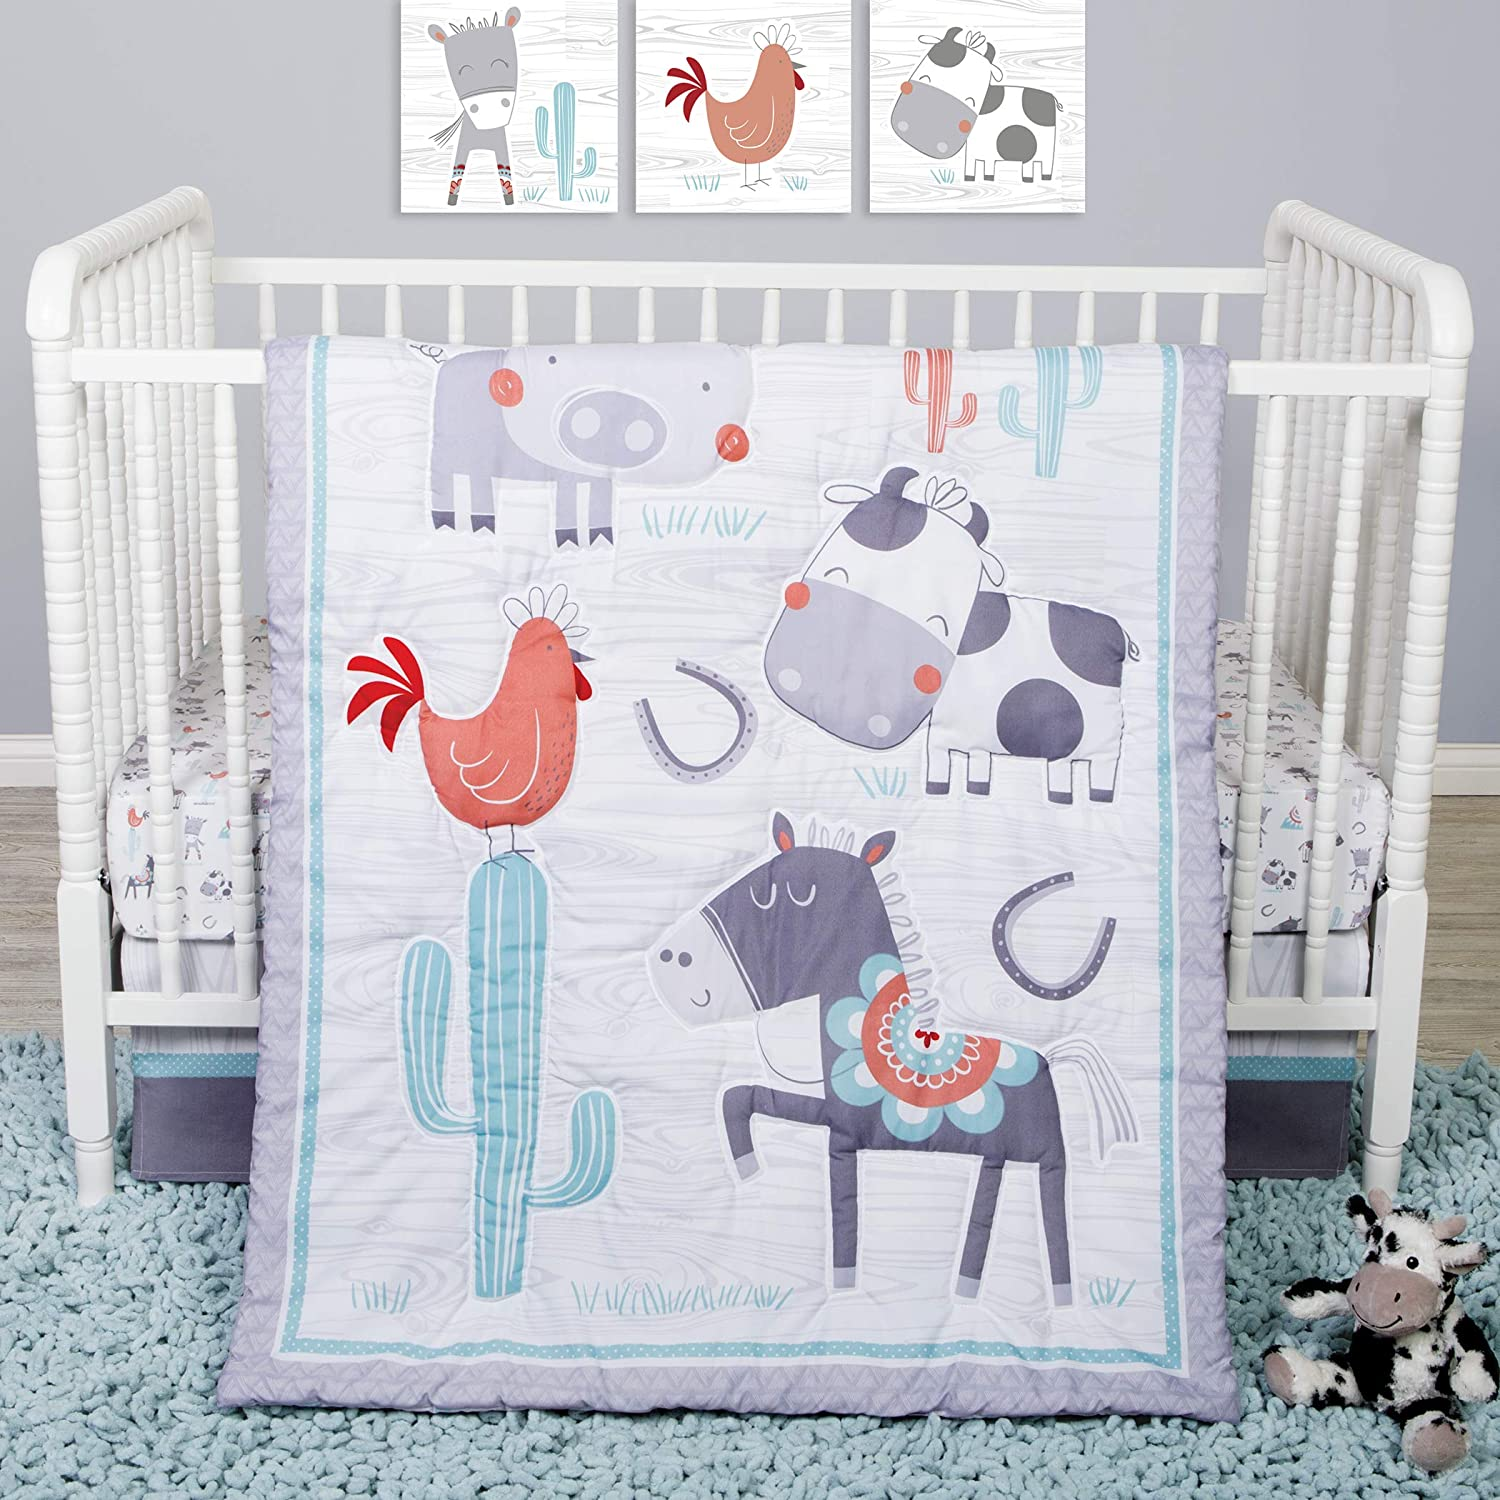 B07SGRQ31M Sammy & Lou Sammy And Lou Farmstead Friends 4 Piece Crib Bedding Set 81blm5f-R9L